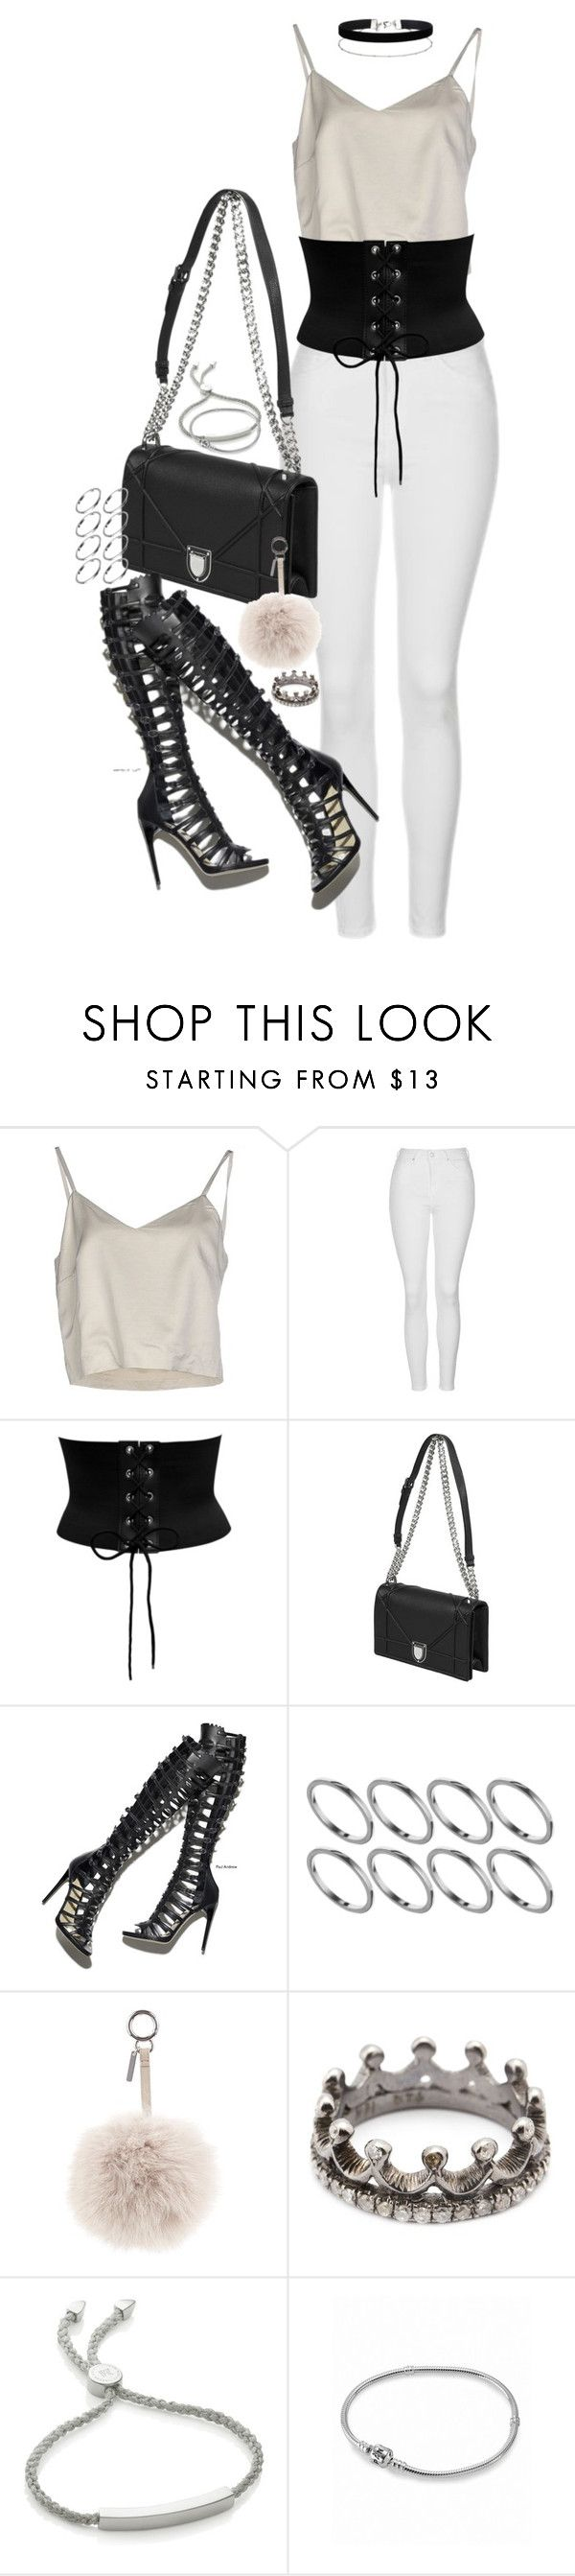 """""""Untitled #150"""" by marinas-clothes ❤ liked on Polyvore featuring Erika Cavallini Semi-Couture, Topshop, ASOS, Fendi, Loree Rodkin, Monica Vinader, Pandora and Miss Selfridge"""